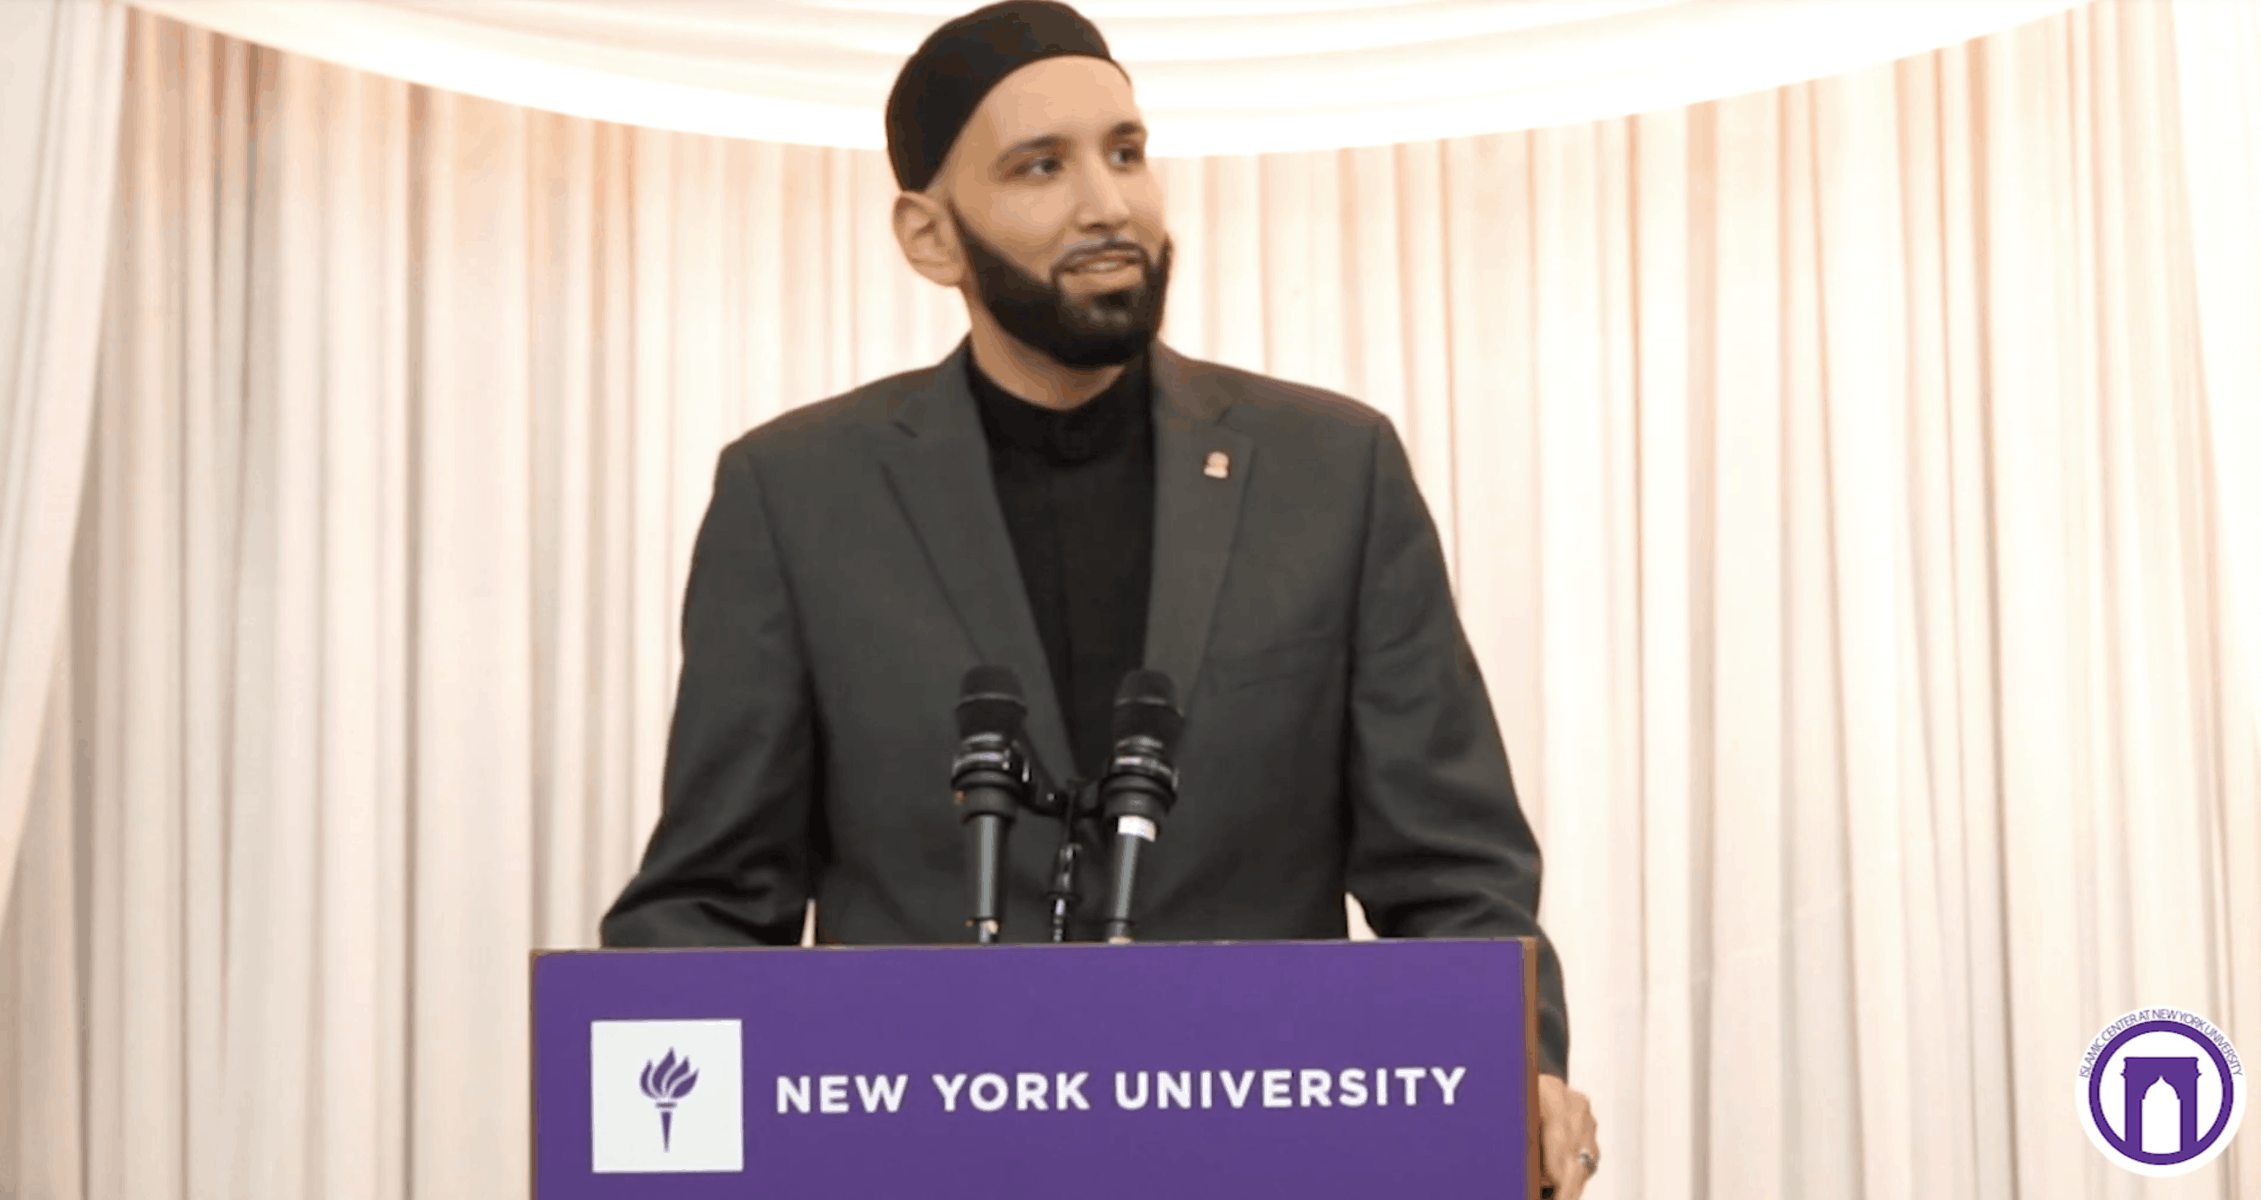 Omar Suleiman – Give to others what we want from God